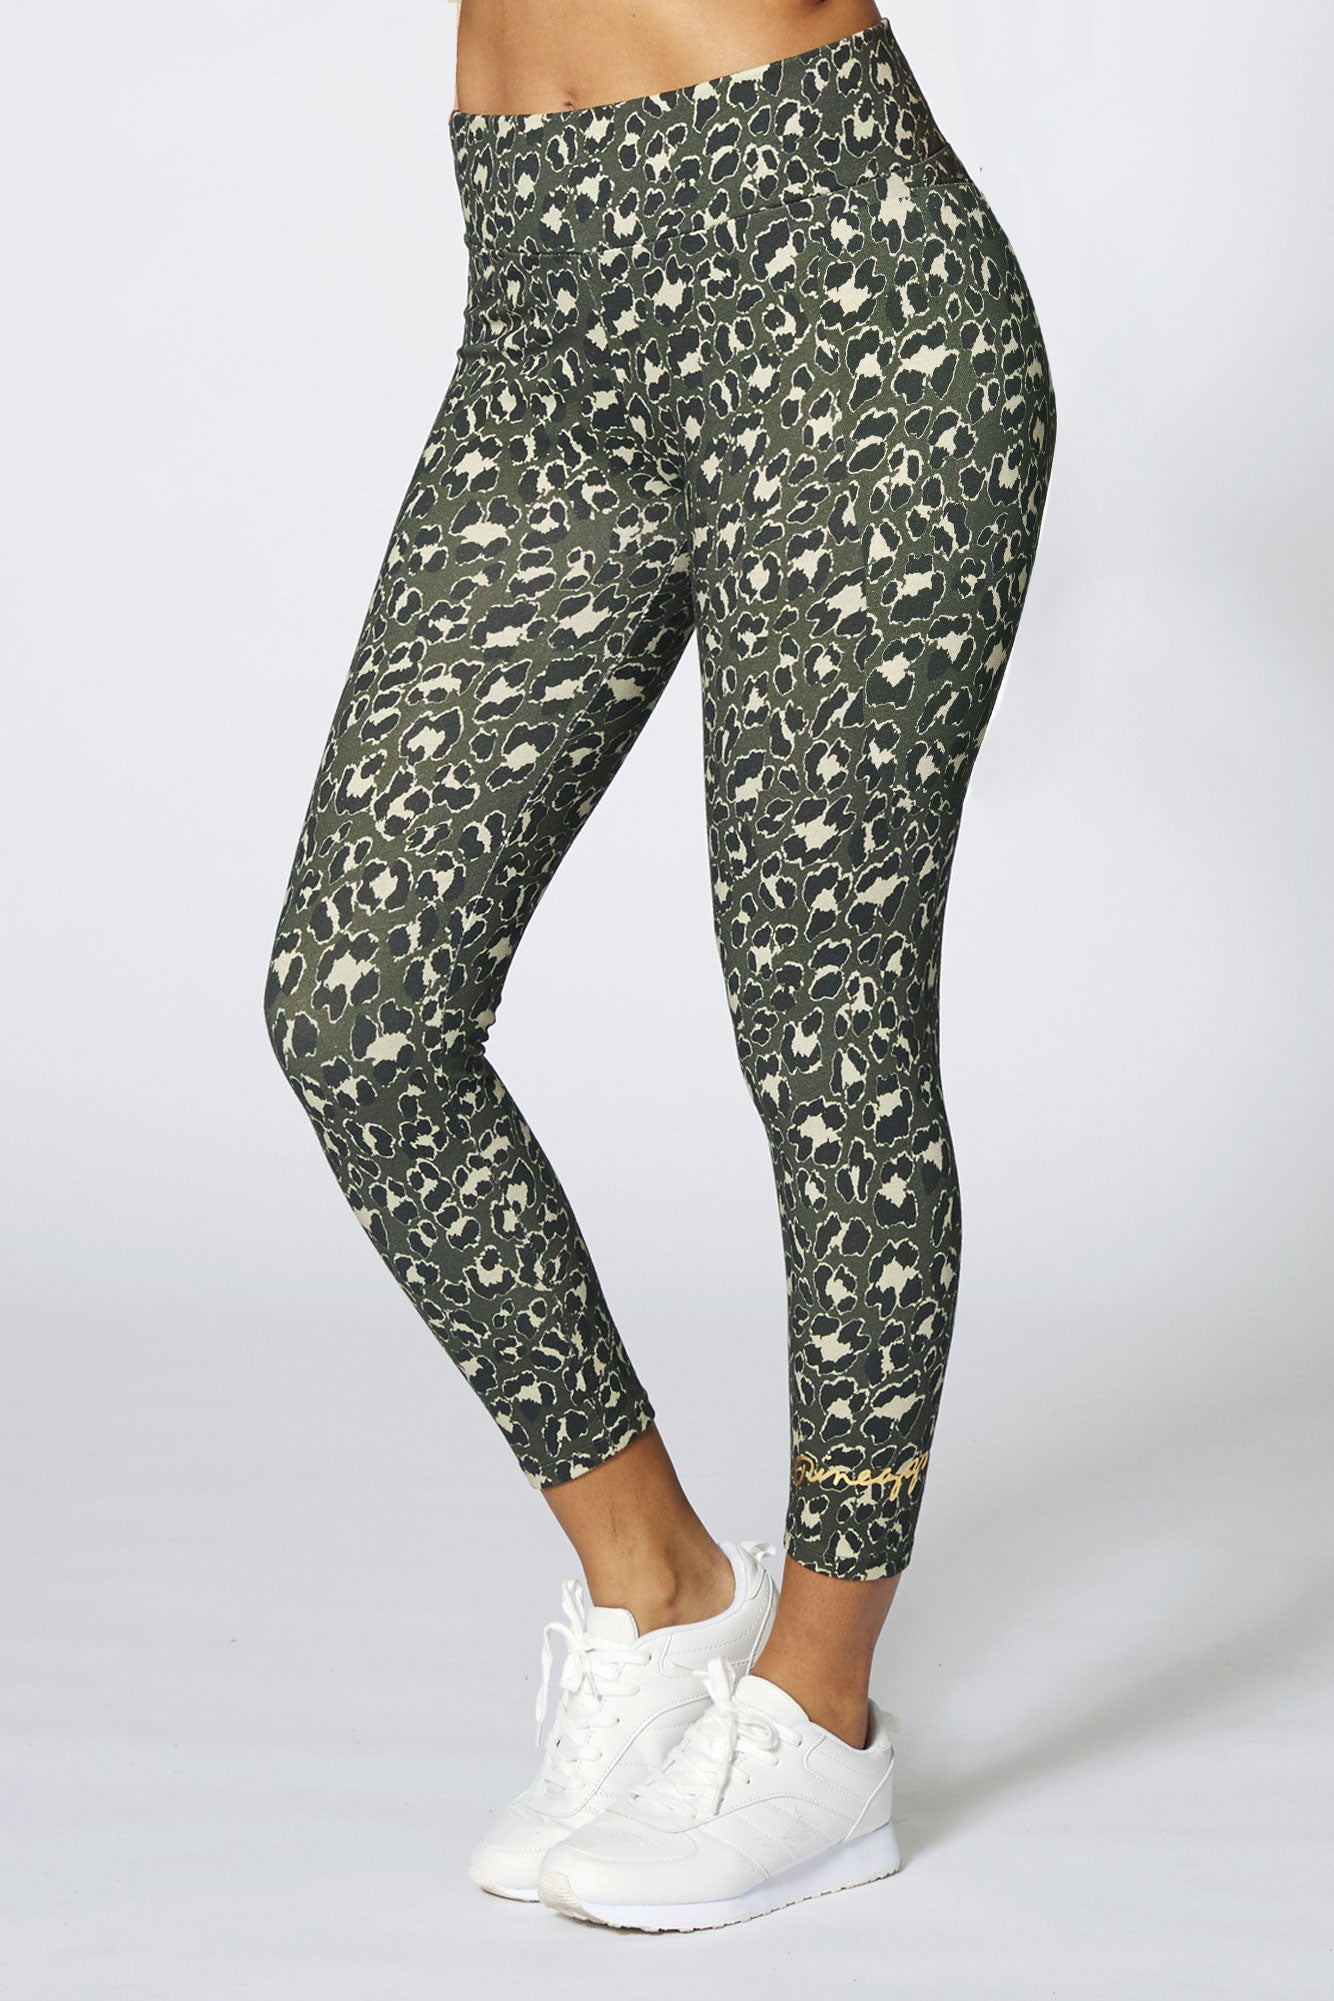 Pineapple Dance Women's Khaki Leopard Crop Leggings PT17490G5